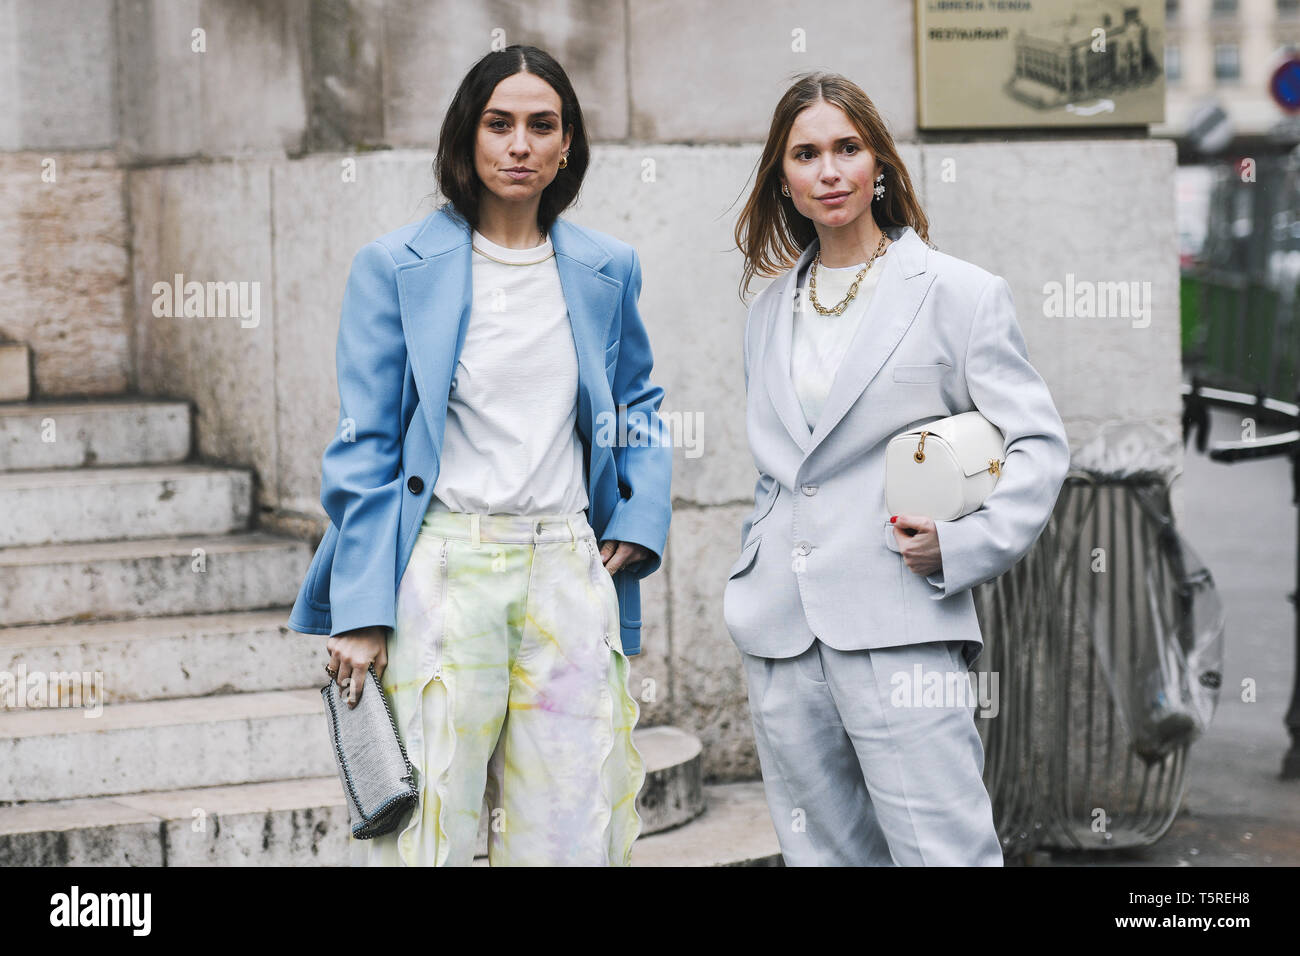 Paris, France - March 04, 2019: Street style outfit -  Erika Boldrin, Pernille Teisbaek after a fashion show during Paris Fashion Week - PFWFW19 - Stock Image